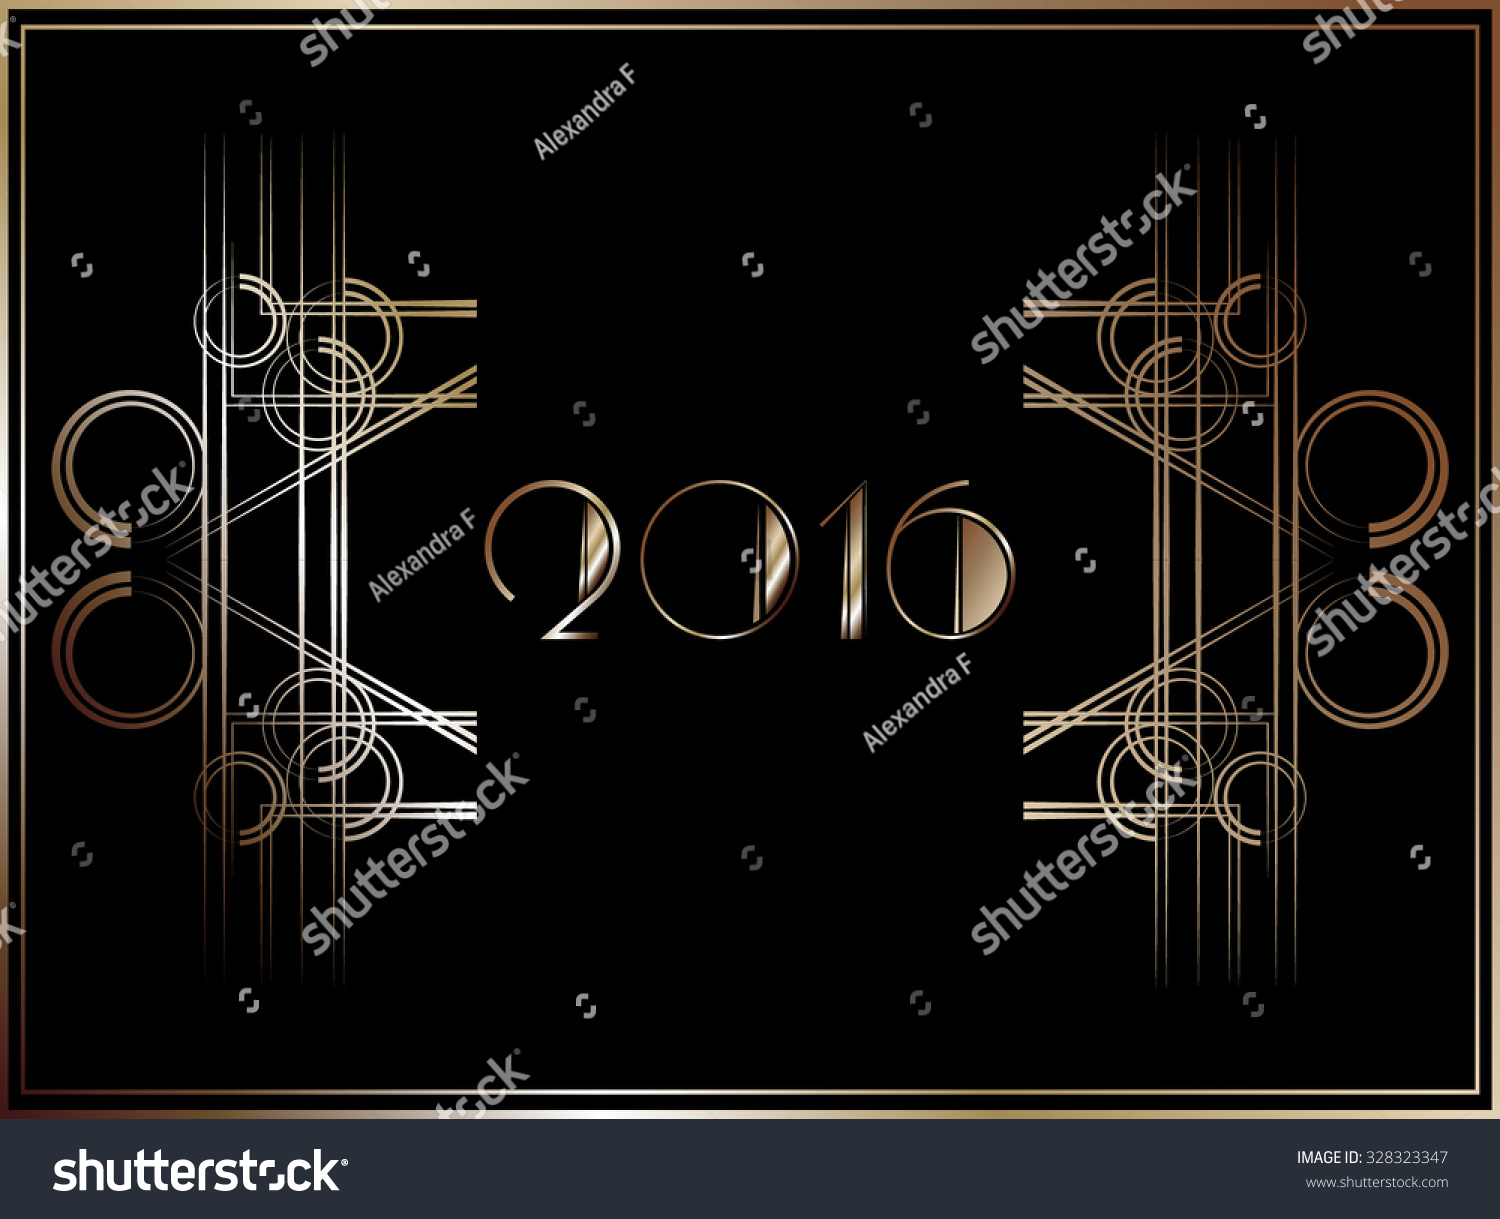 2016 art deco style banner in gold stock vector illustration 328323347 shutterstock. Black Bedroom Furniture Sets. Home Design Ideas